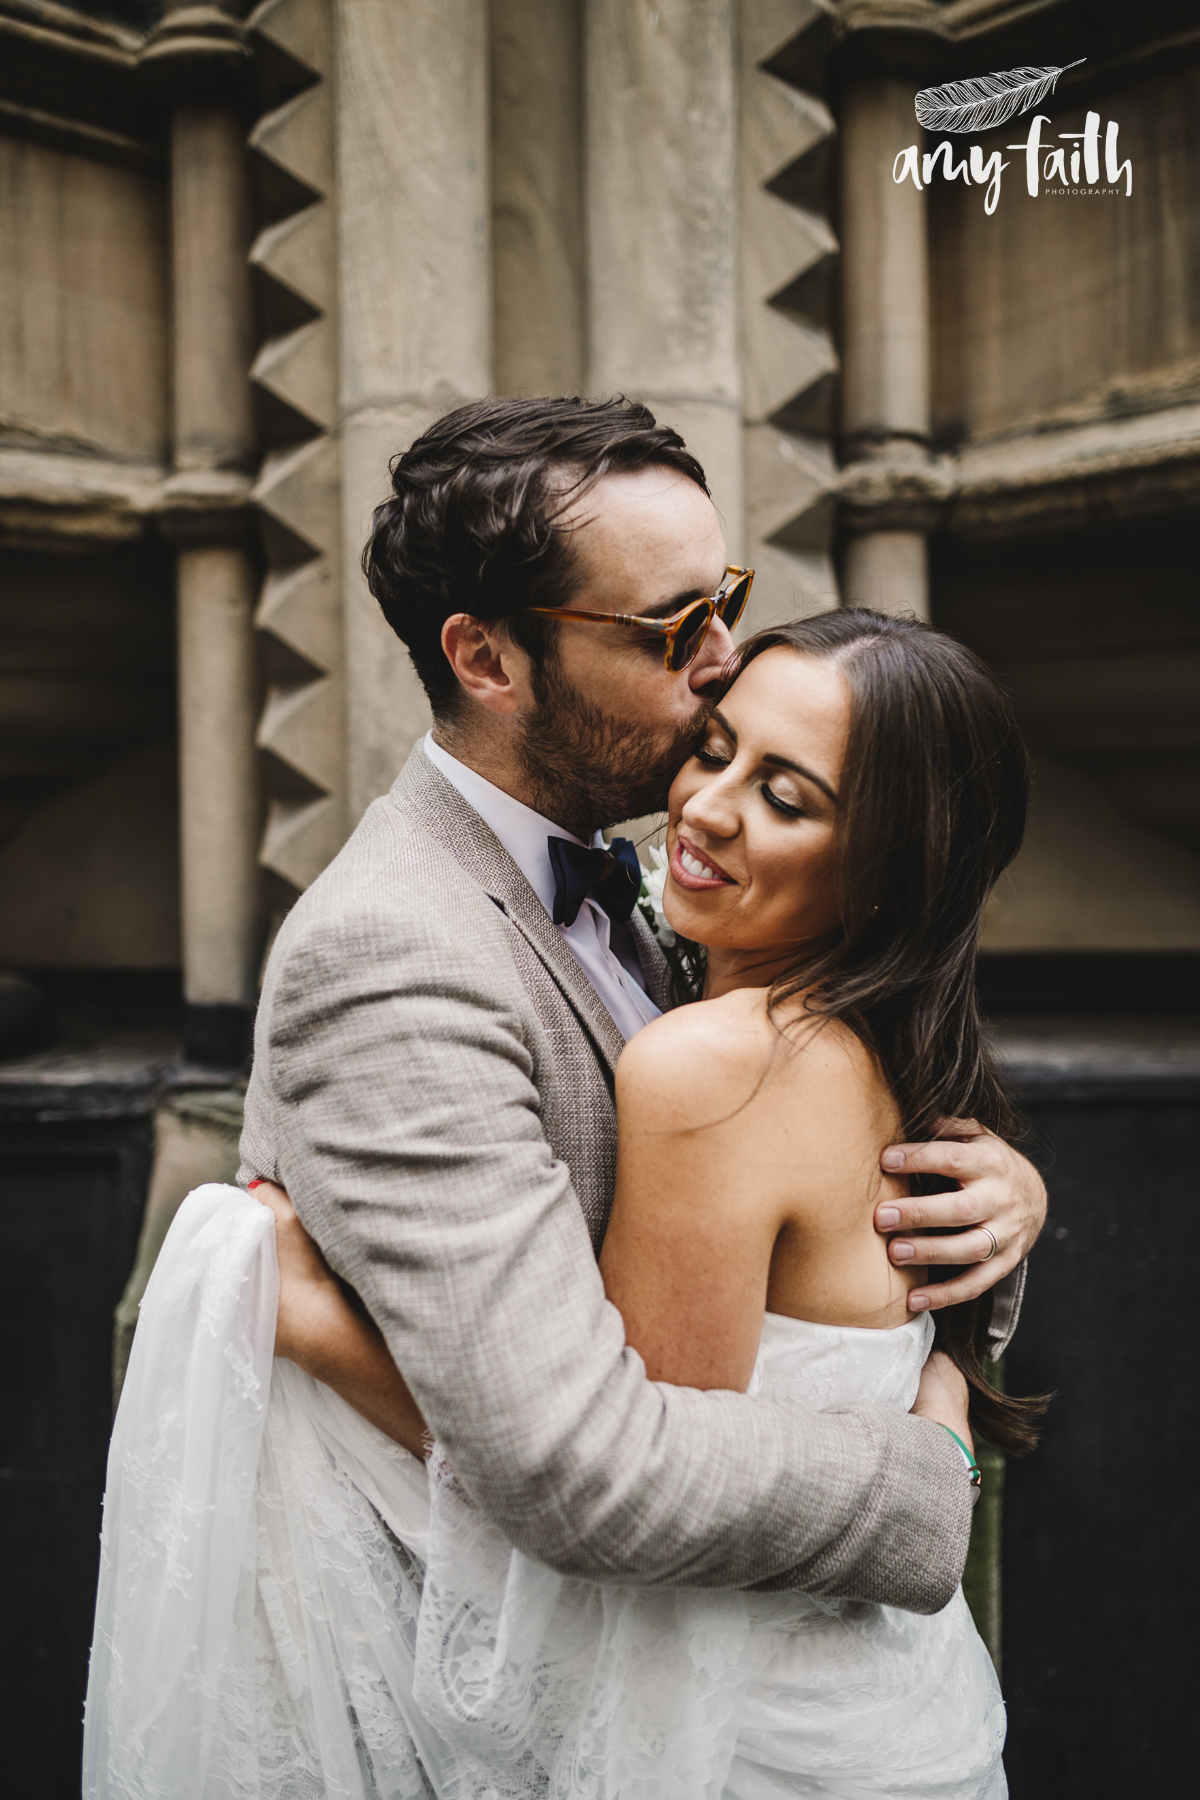 A groom in sunglasses kissing his bride.